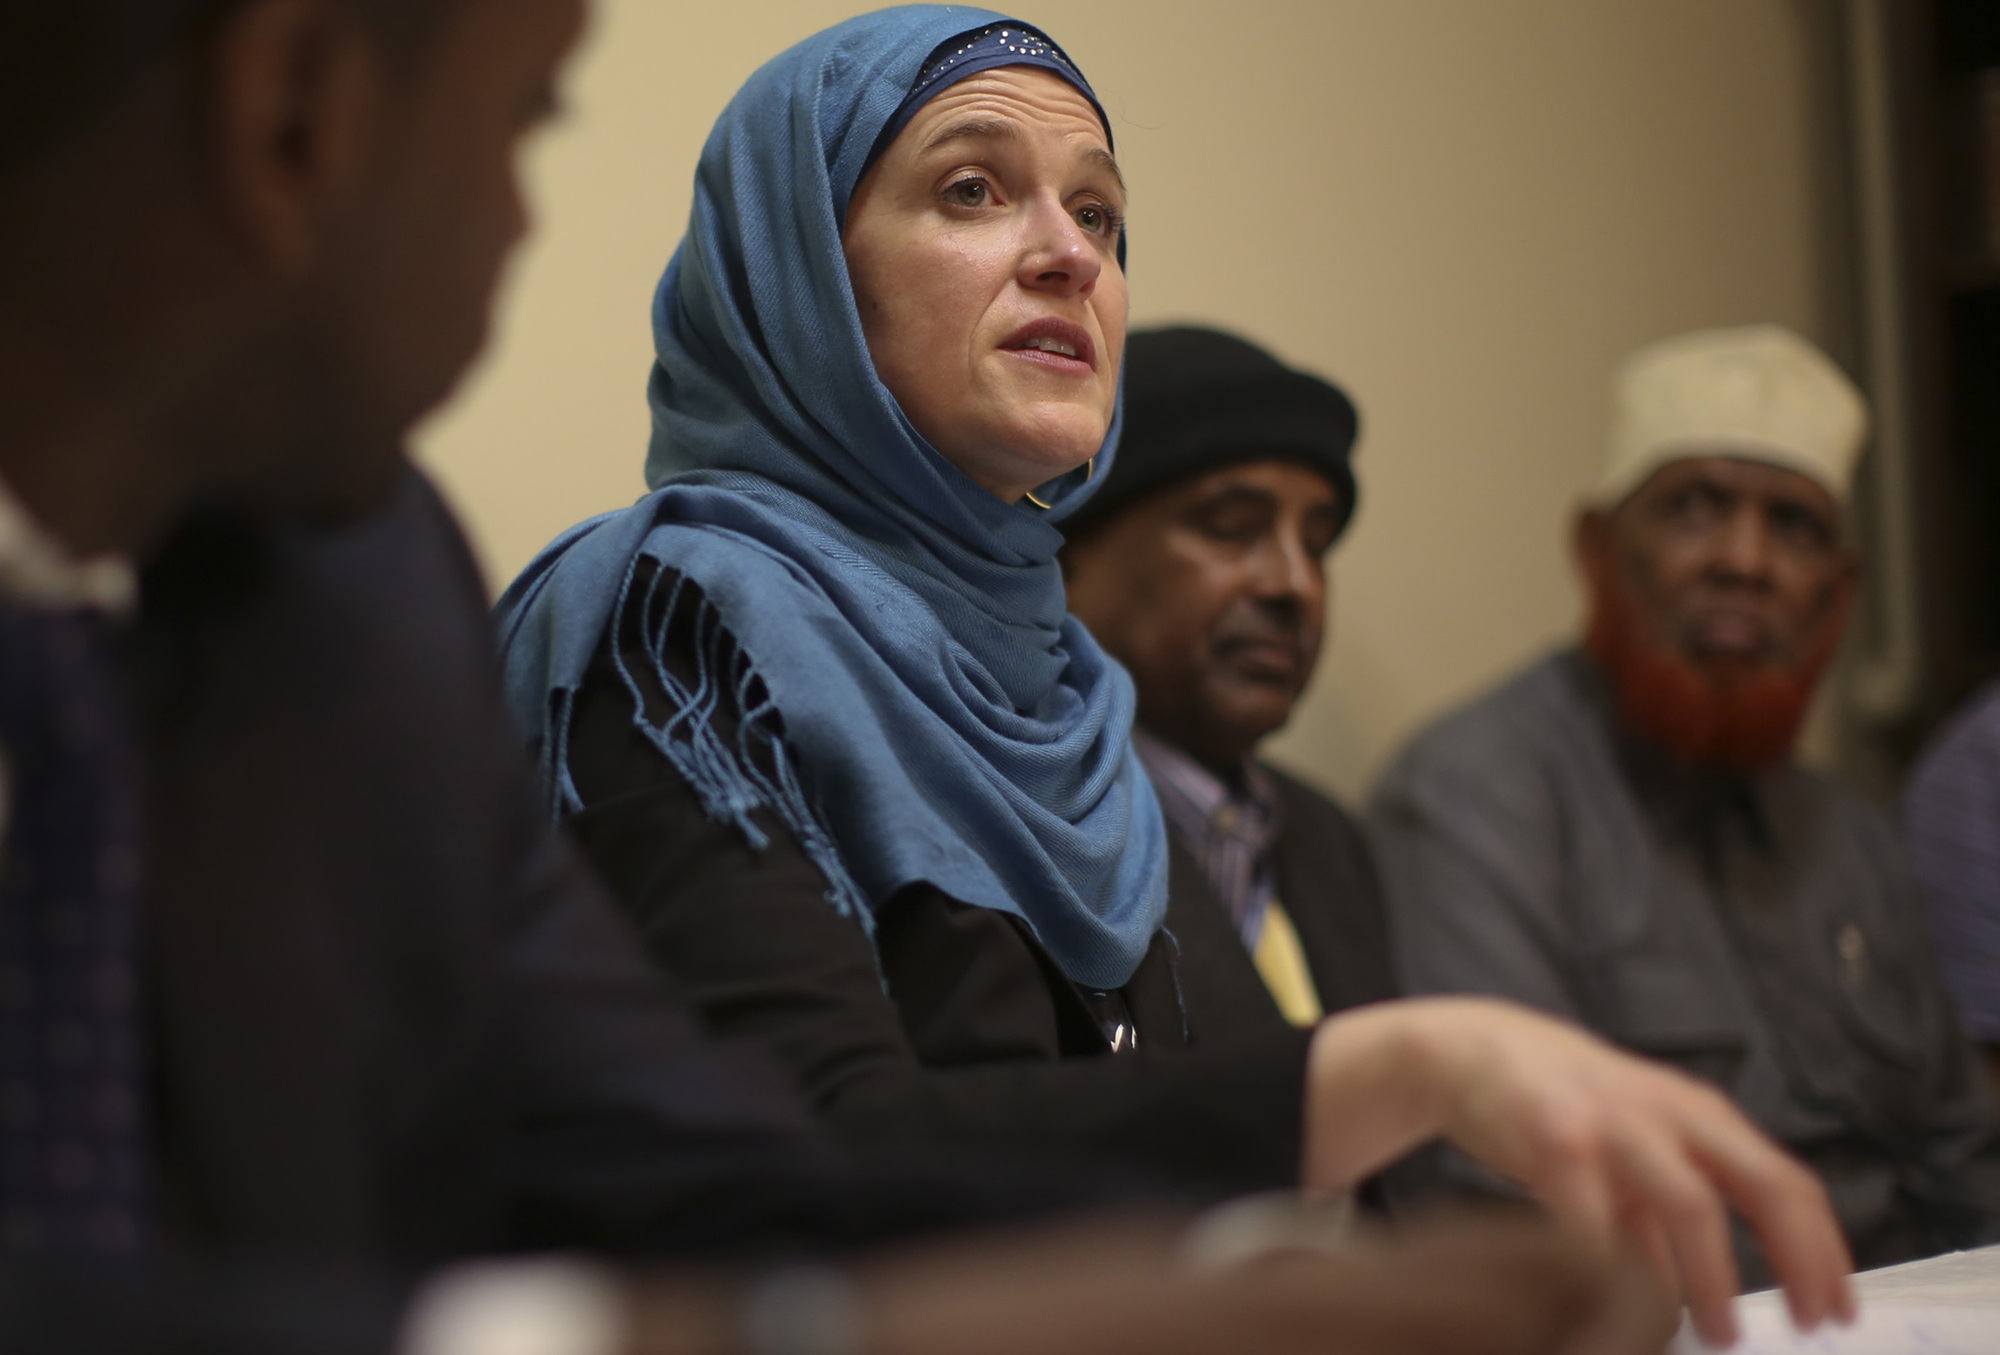 The enemy within: Somali refugees in Minnesota drawn to welfare and